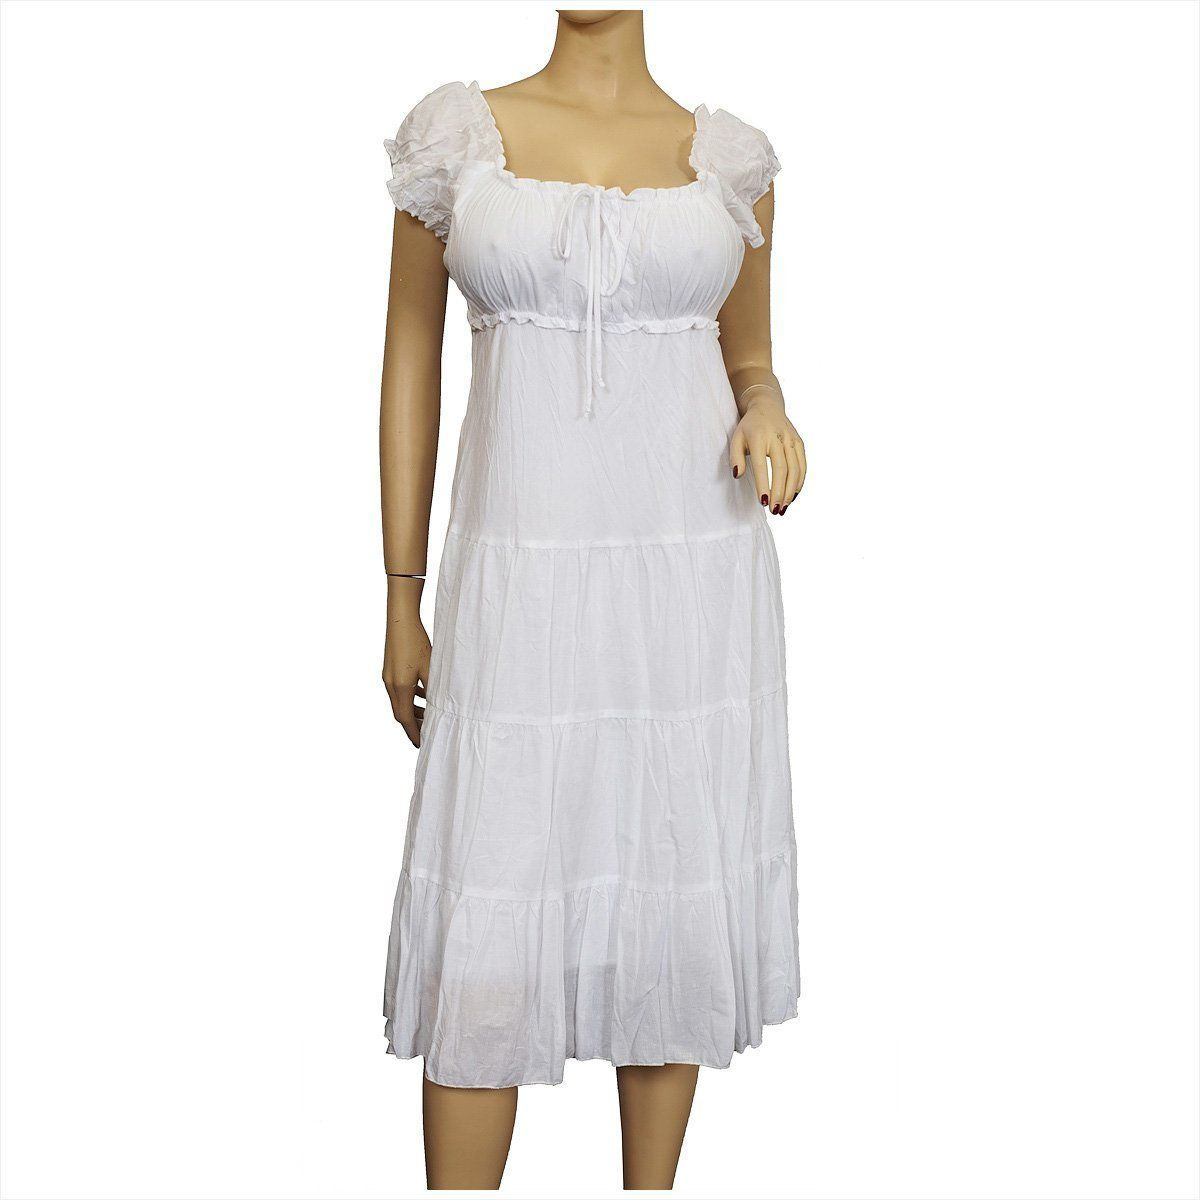 Whitecotton Empire Dress